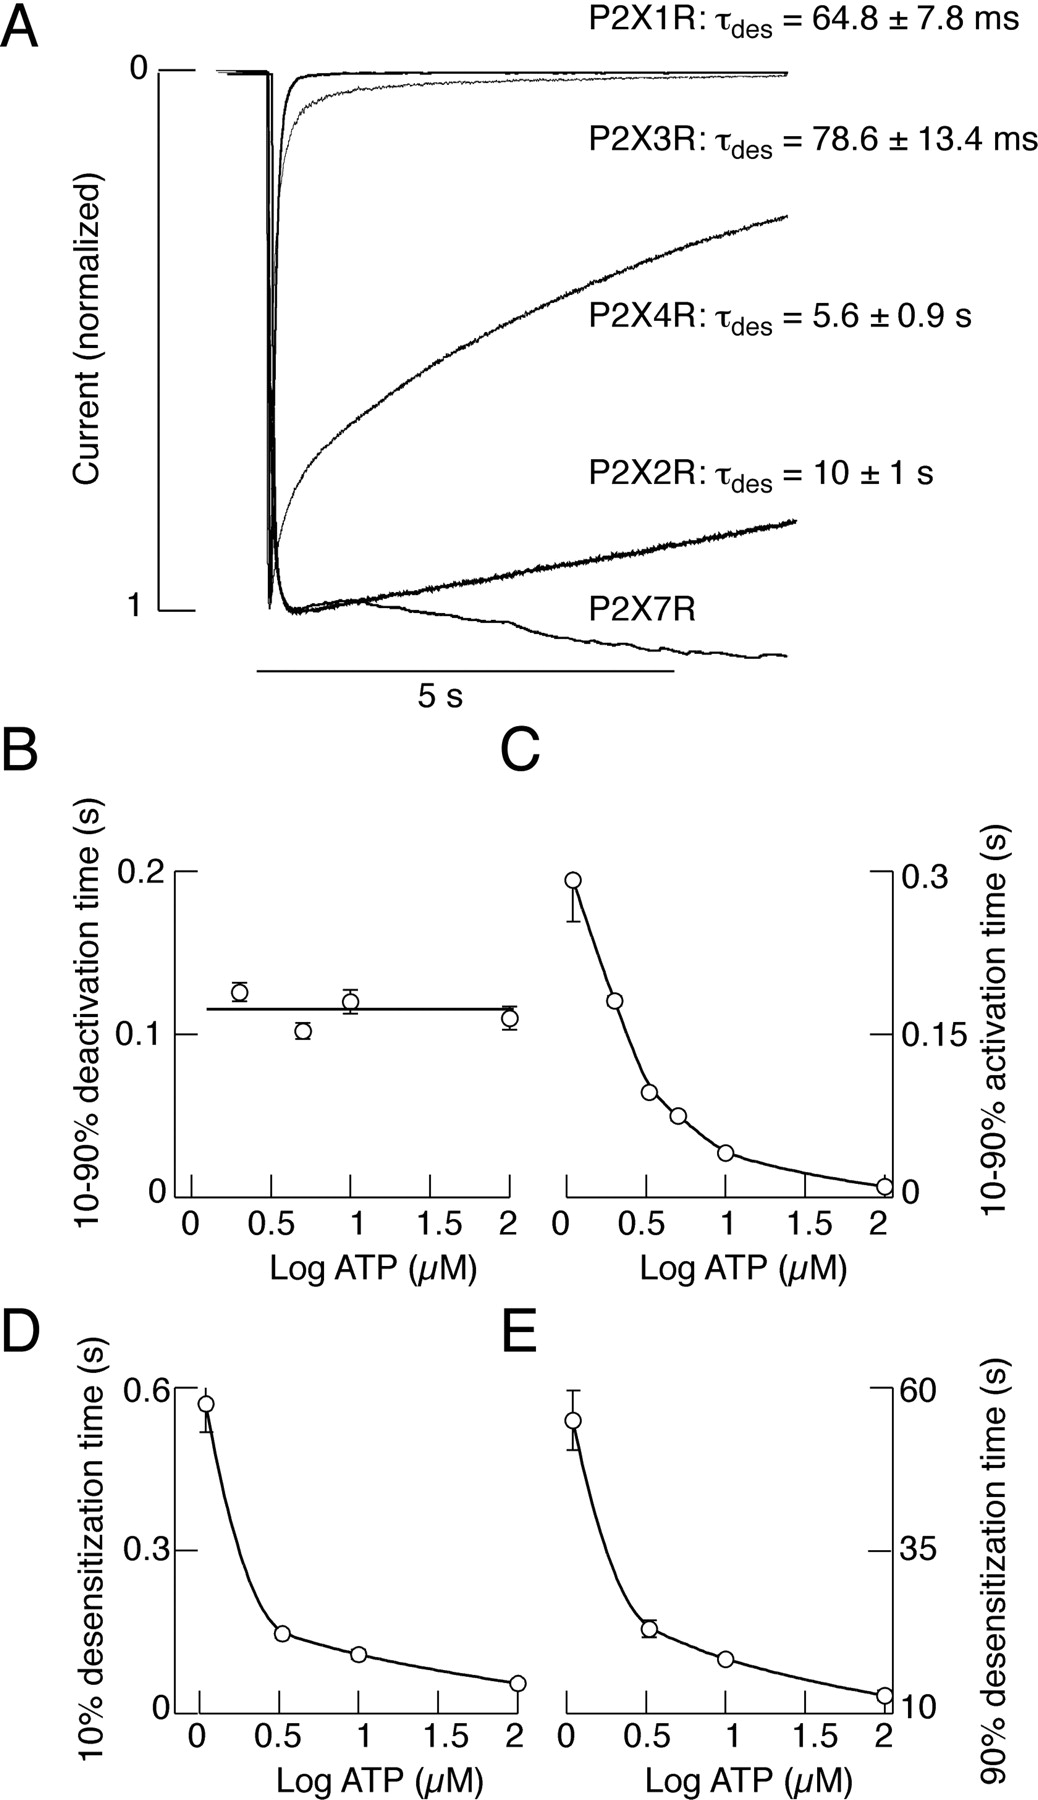 Activation And Regulation Of Purinergic P2x Receptor Channels Ford Fusion V6 3 0 Fuse 48 Diagram Download Figure Open In New Tab